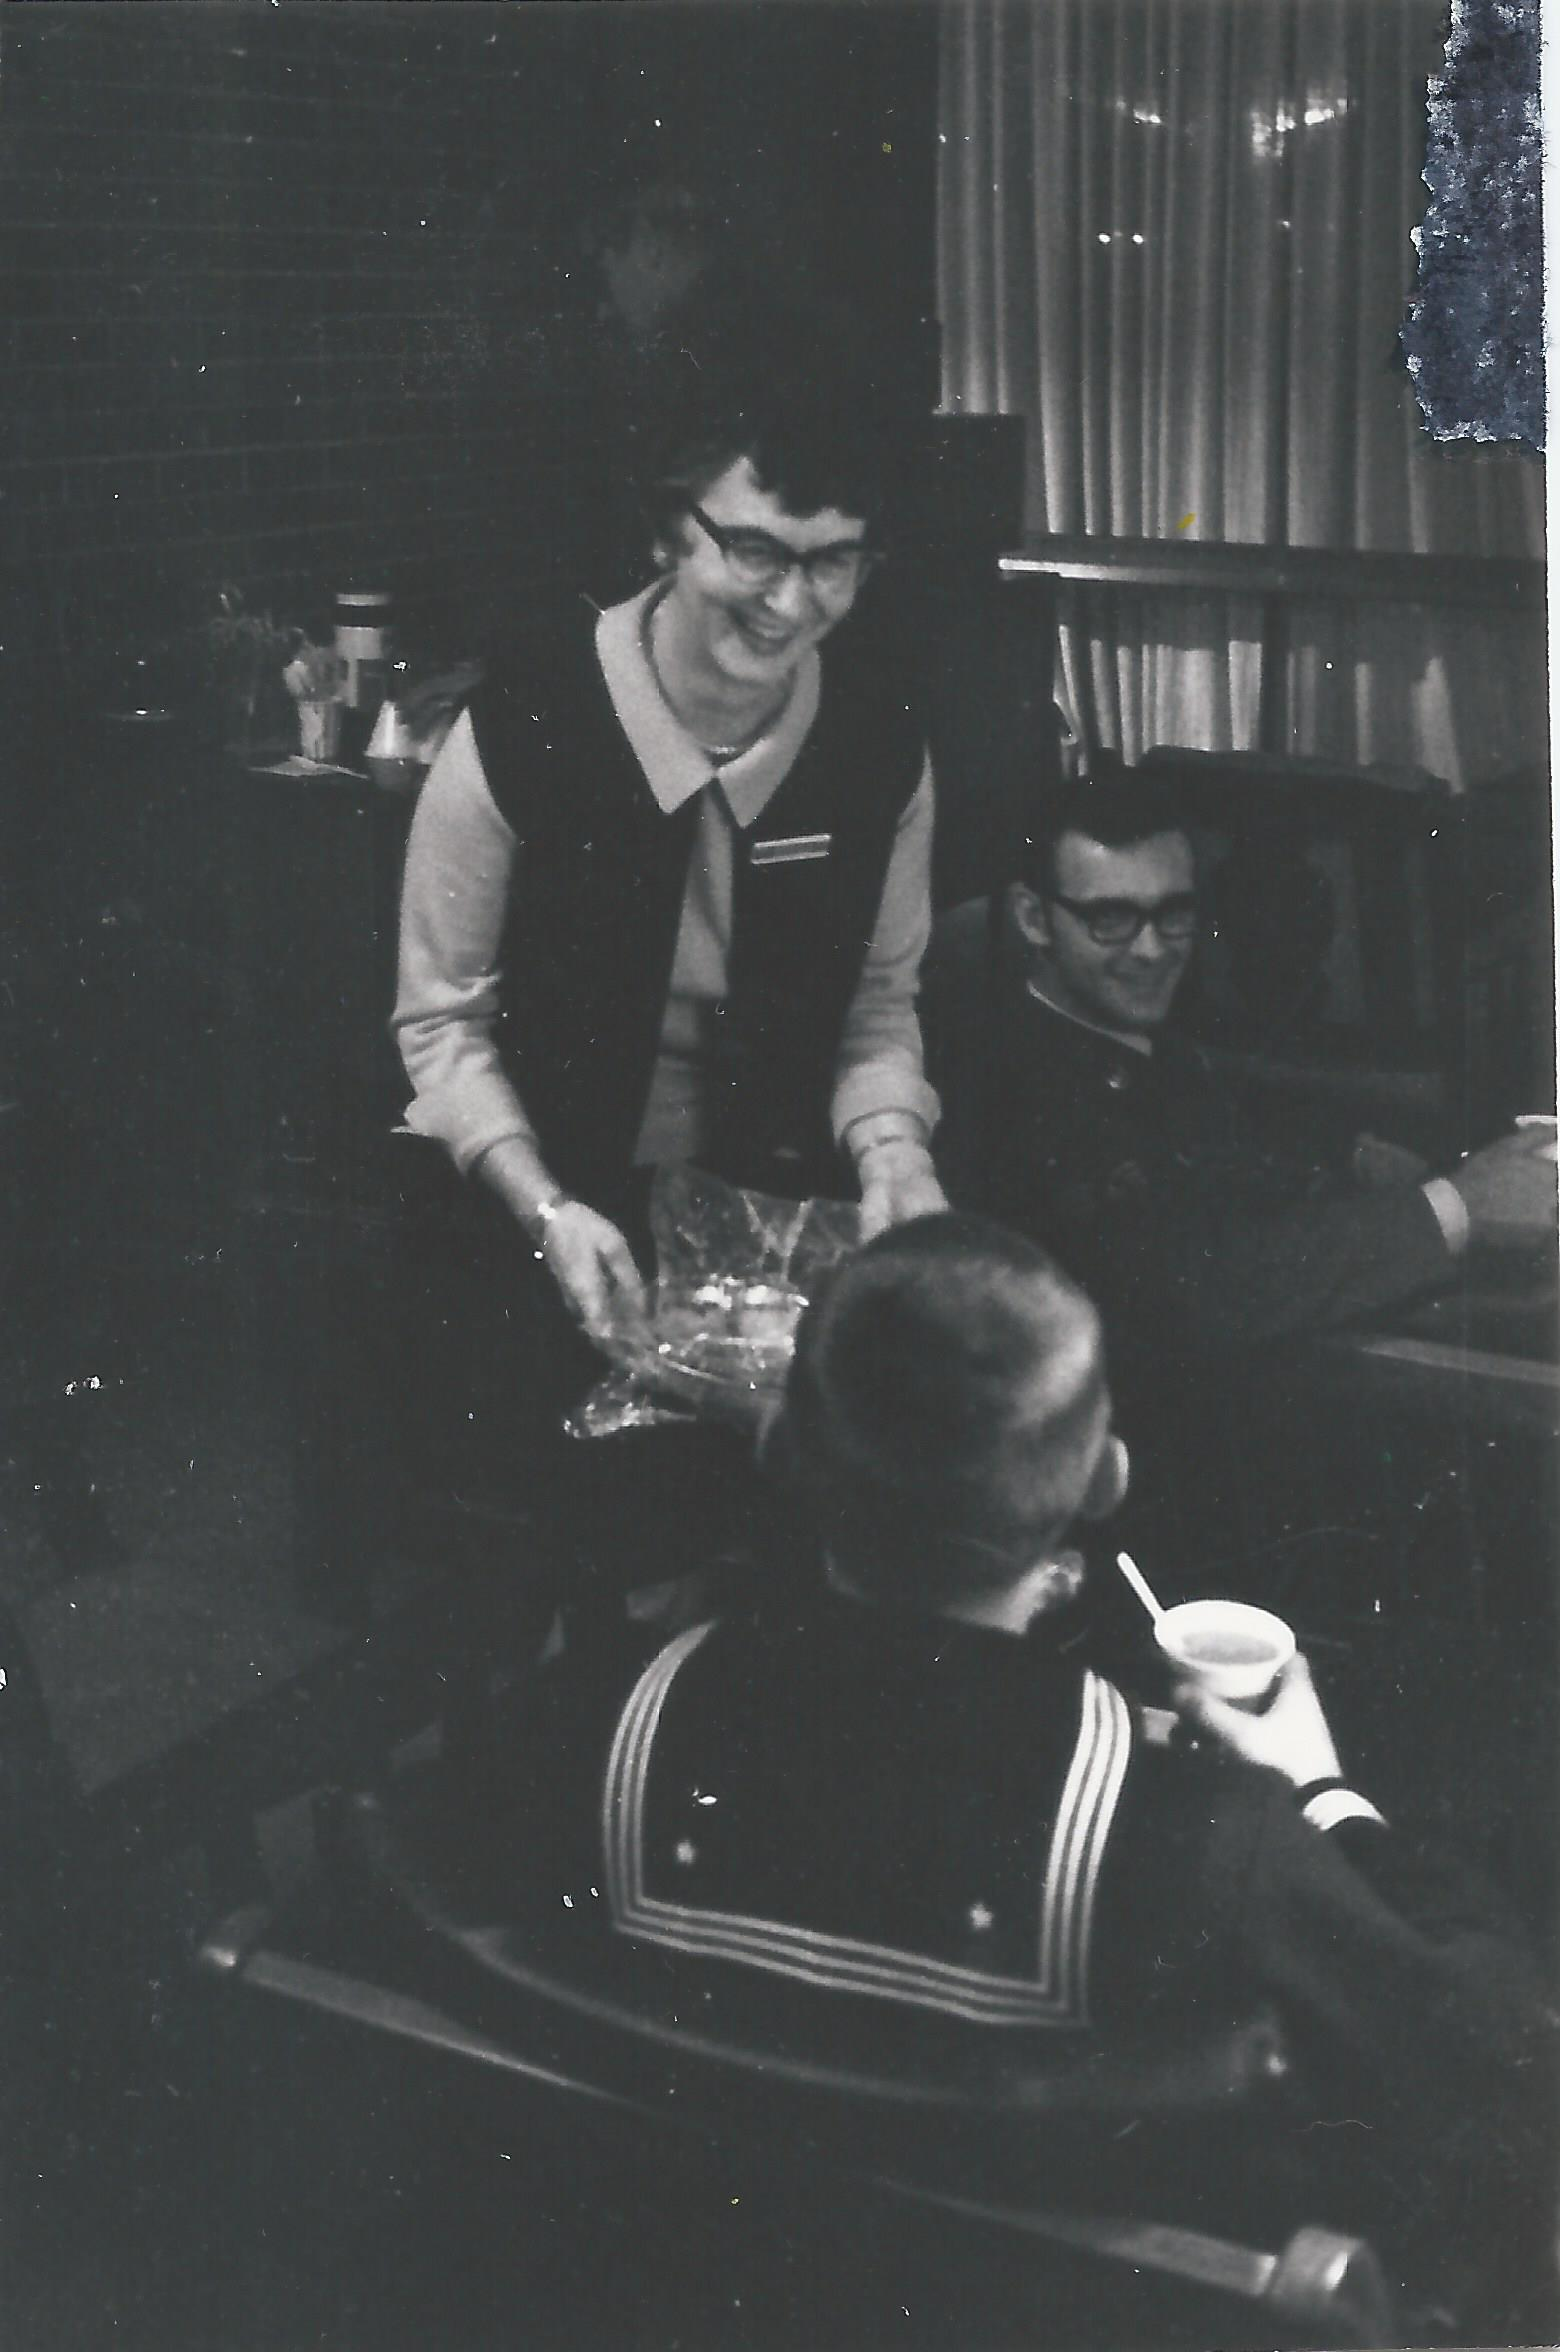 1970 Nov 22 - Opening Day, serving in lounge